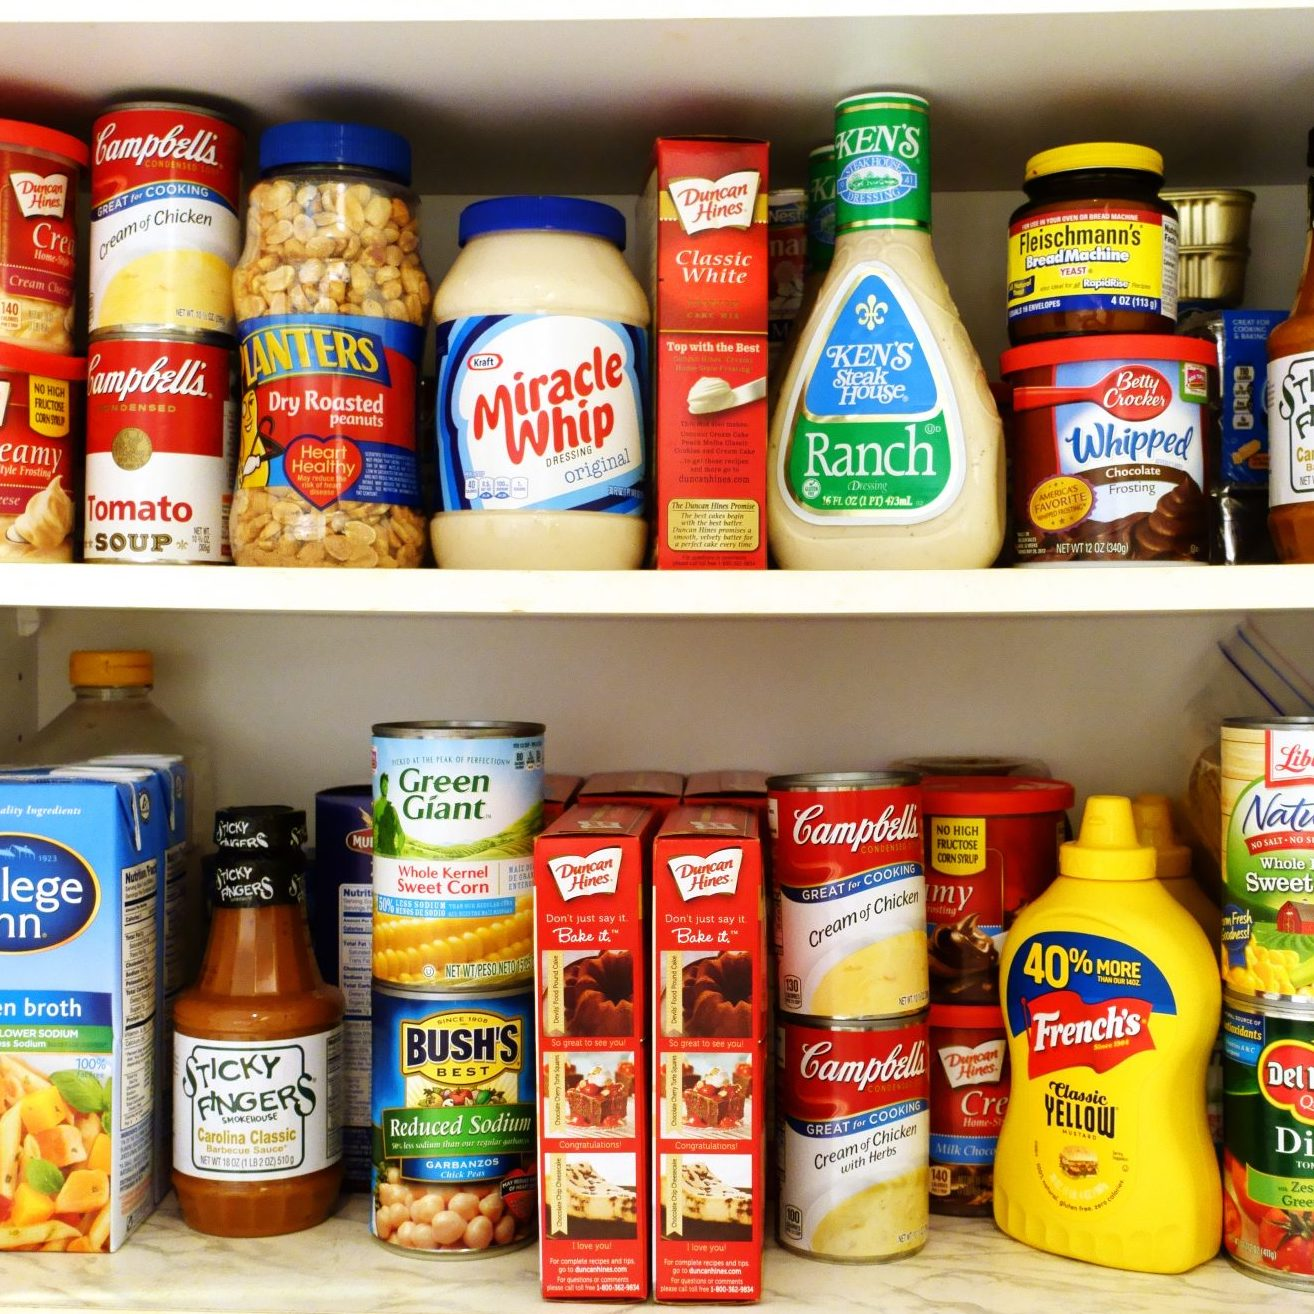 Kitchen pantry shelves filled with groceries